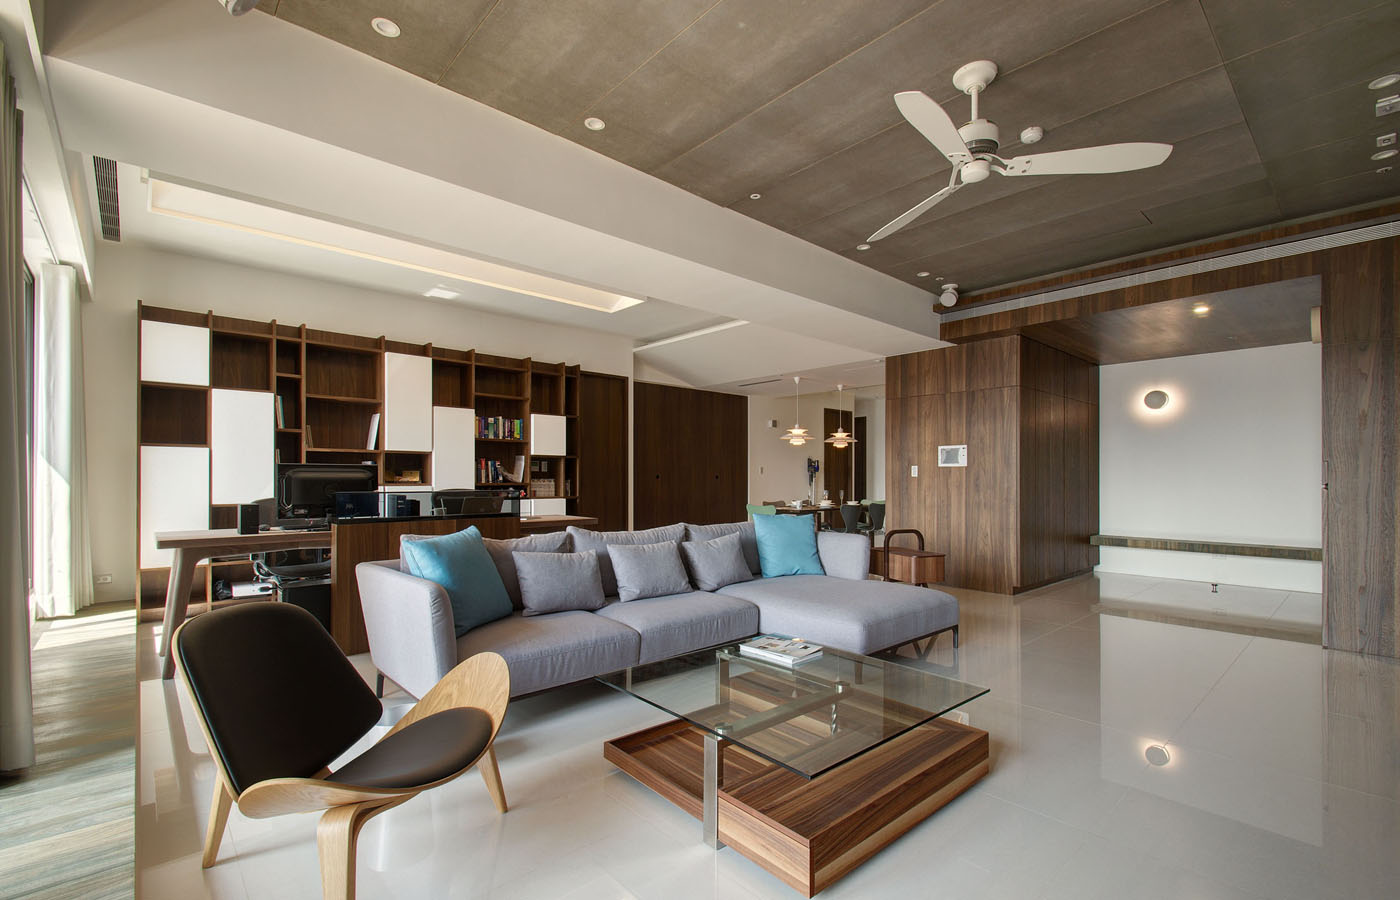 Modern apartment designs by phase6 design studio for Interior design pictures